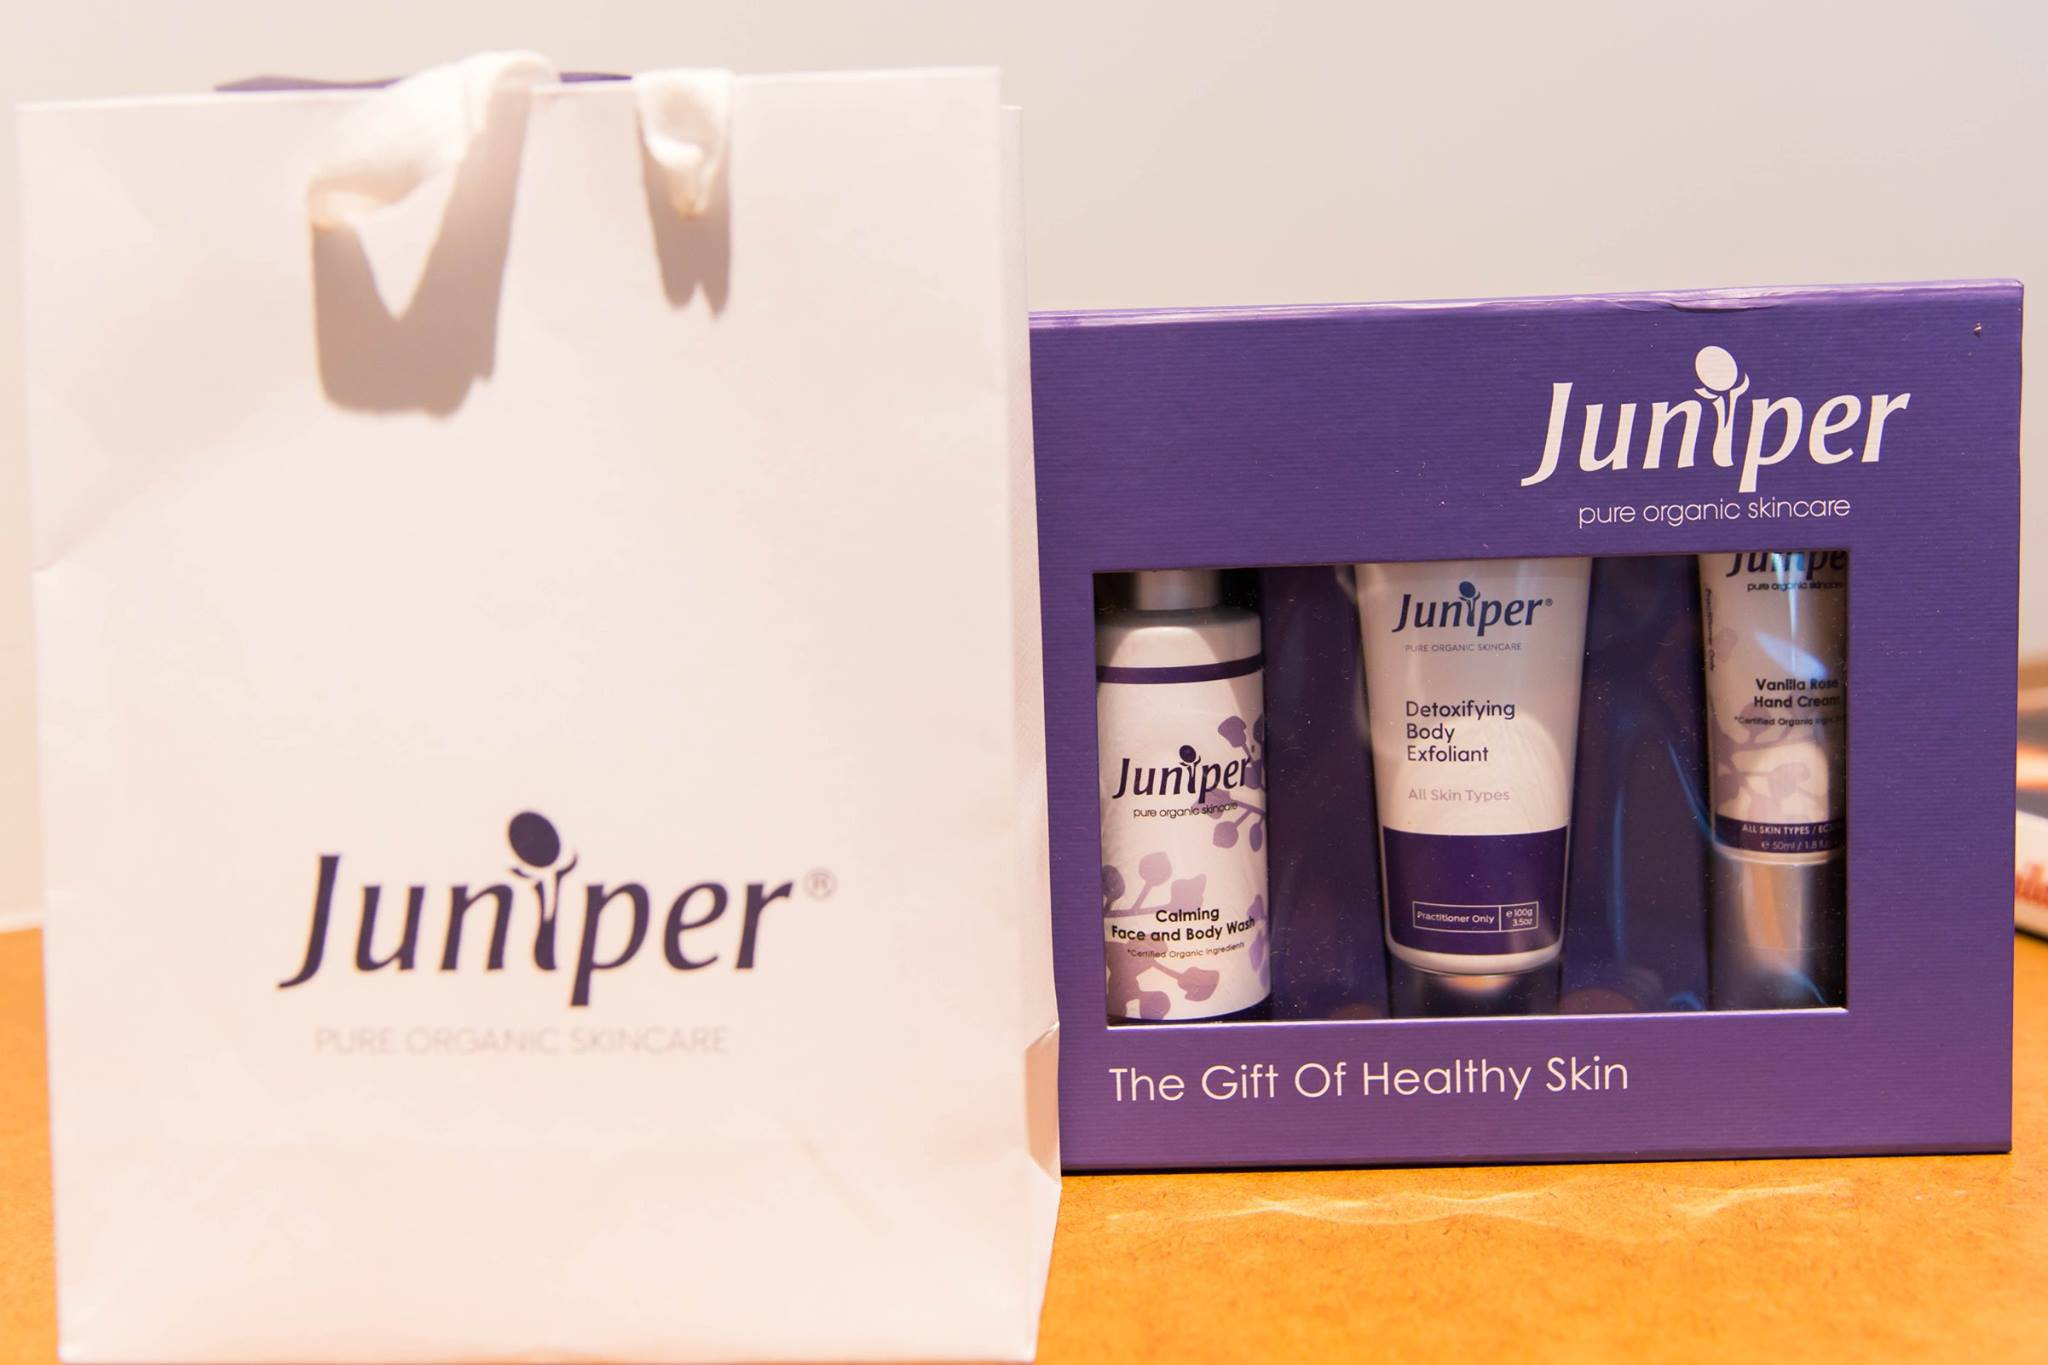 Thank you to the amazing team at Juniper Organic Skincare who supported our Creative Mama Workshop charity event for PANDA Awareness Week with incredible gifts.   Juniper - pure organic skincare.  More details here:  http://www.juniperaustralia.com.au/